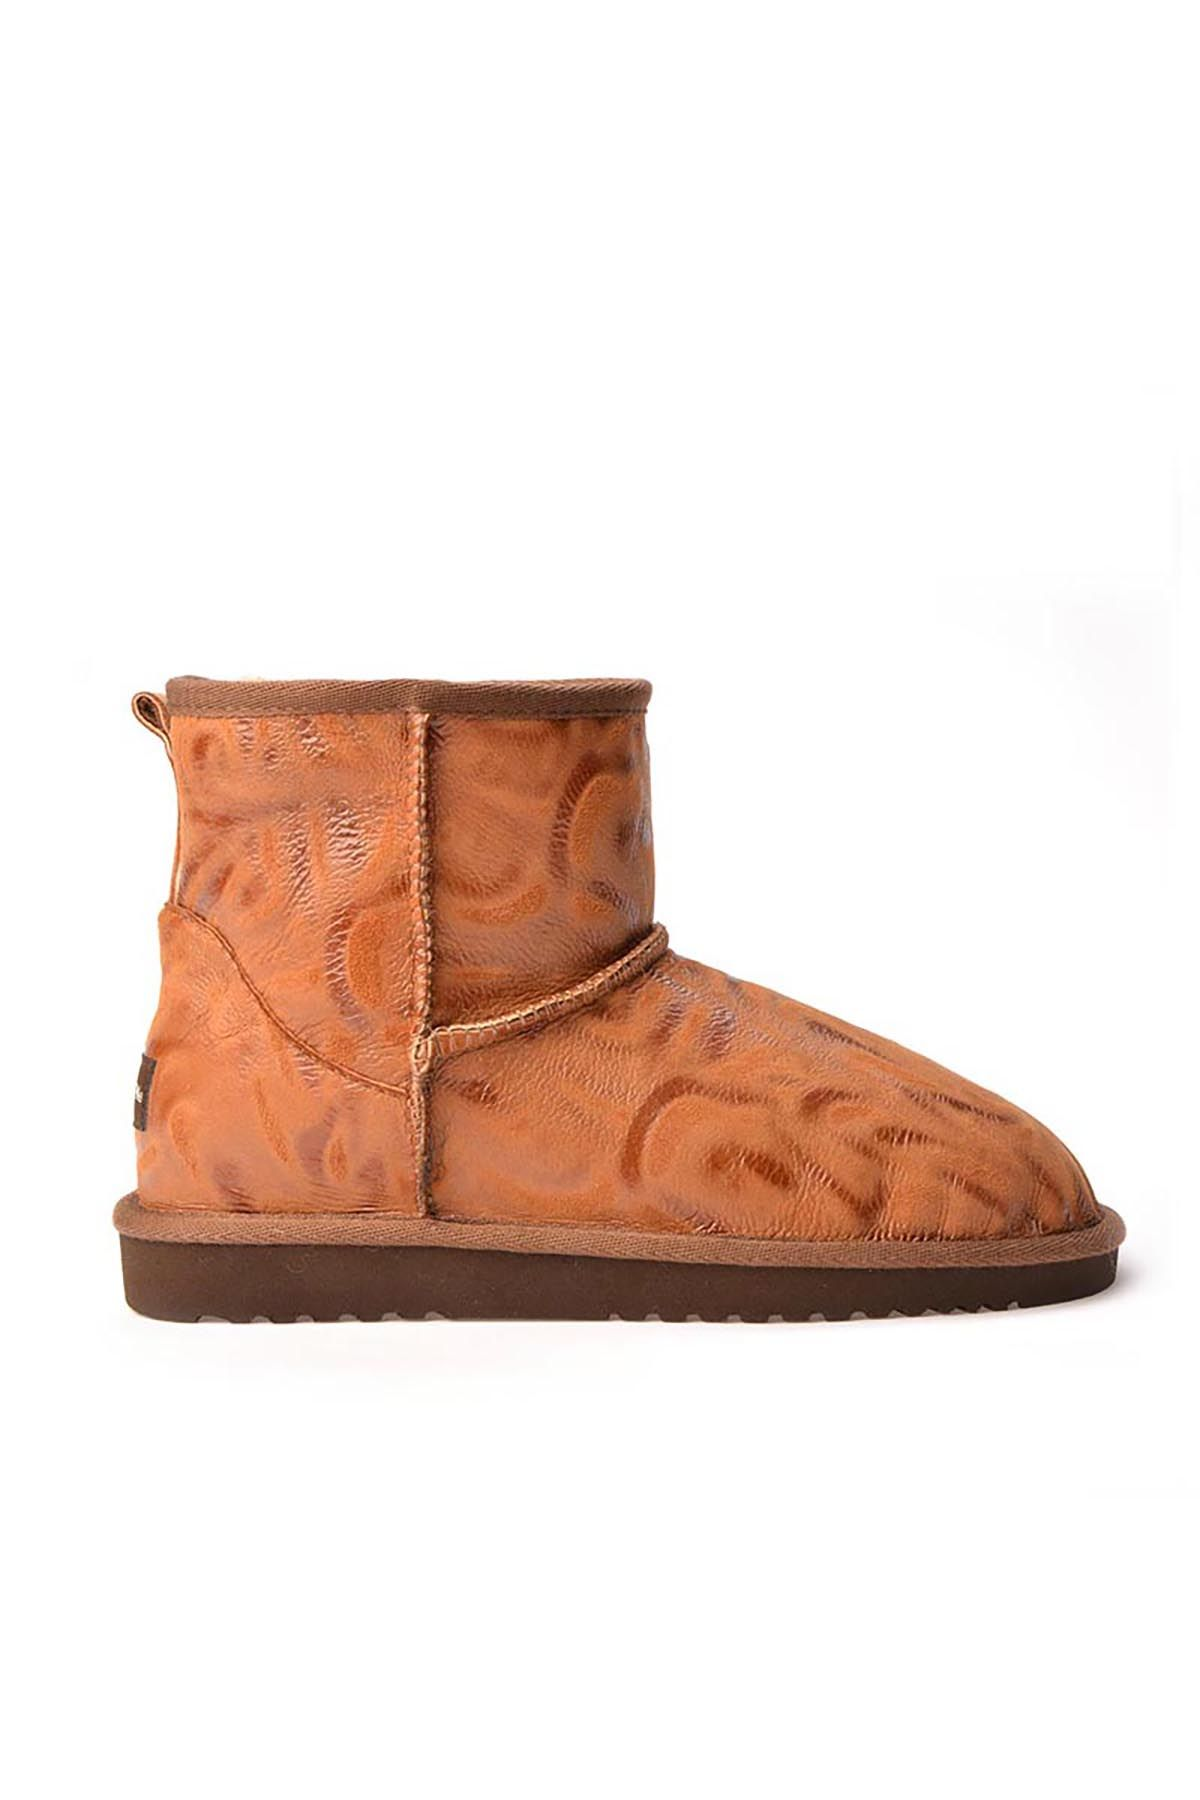 Cool Moon Patterned Women Boots From Genuine Fur Ginger